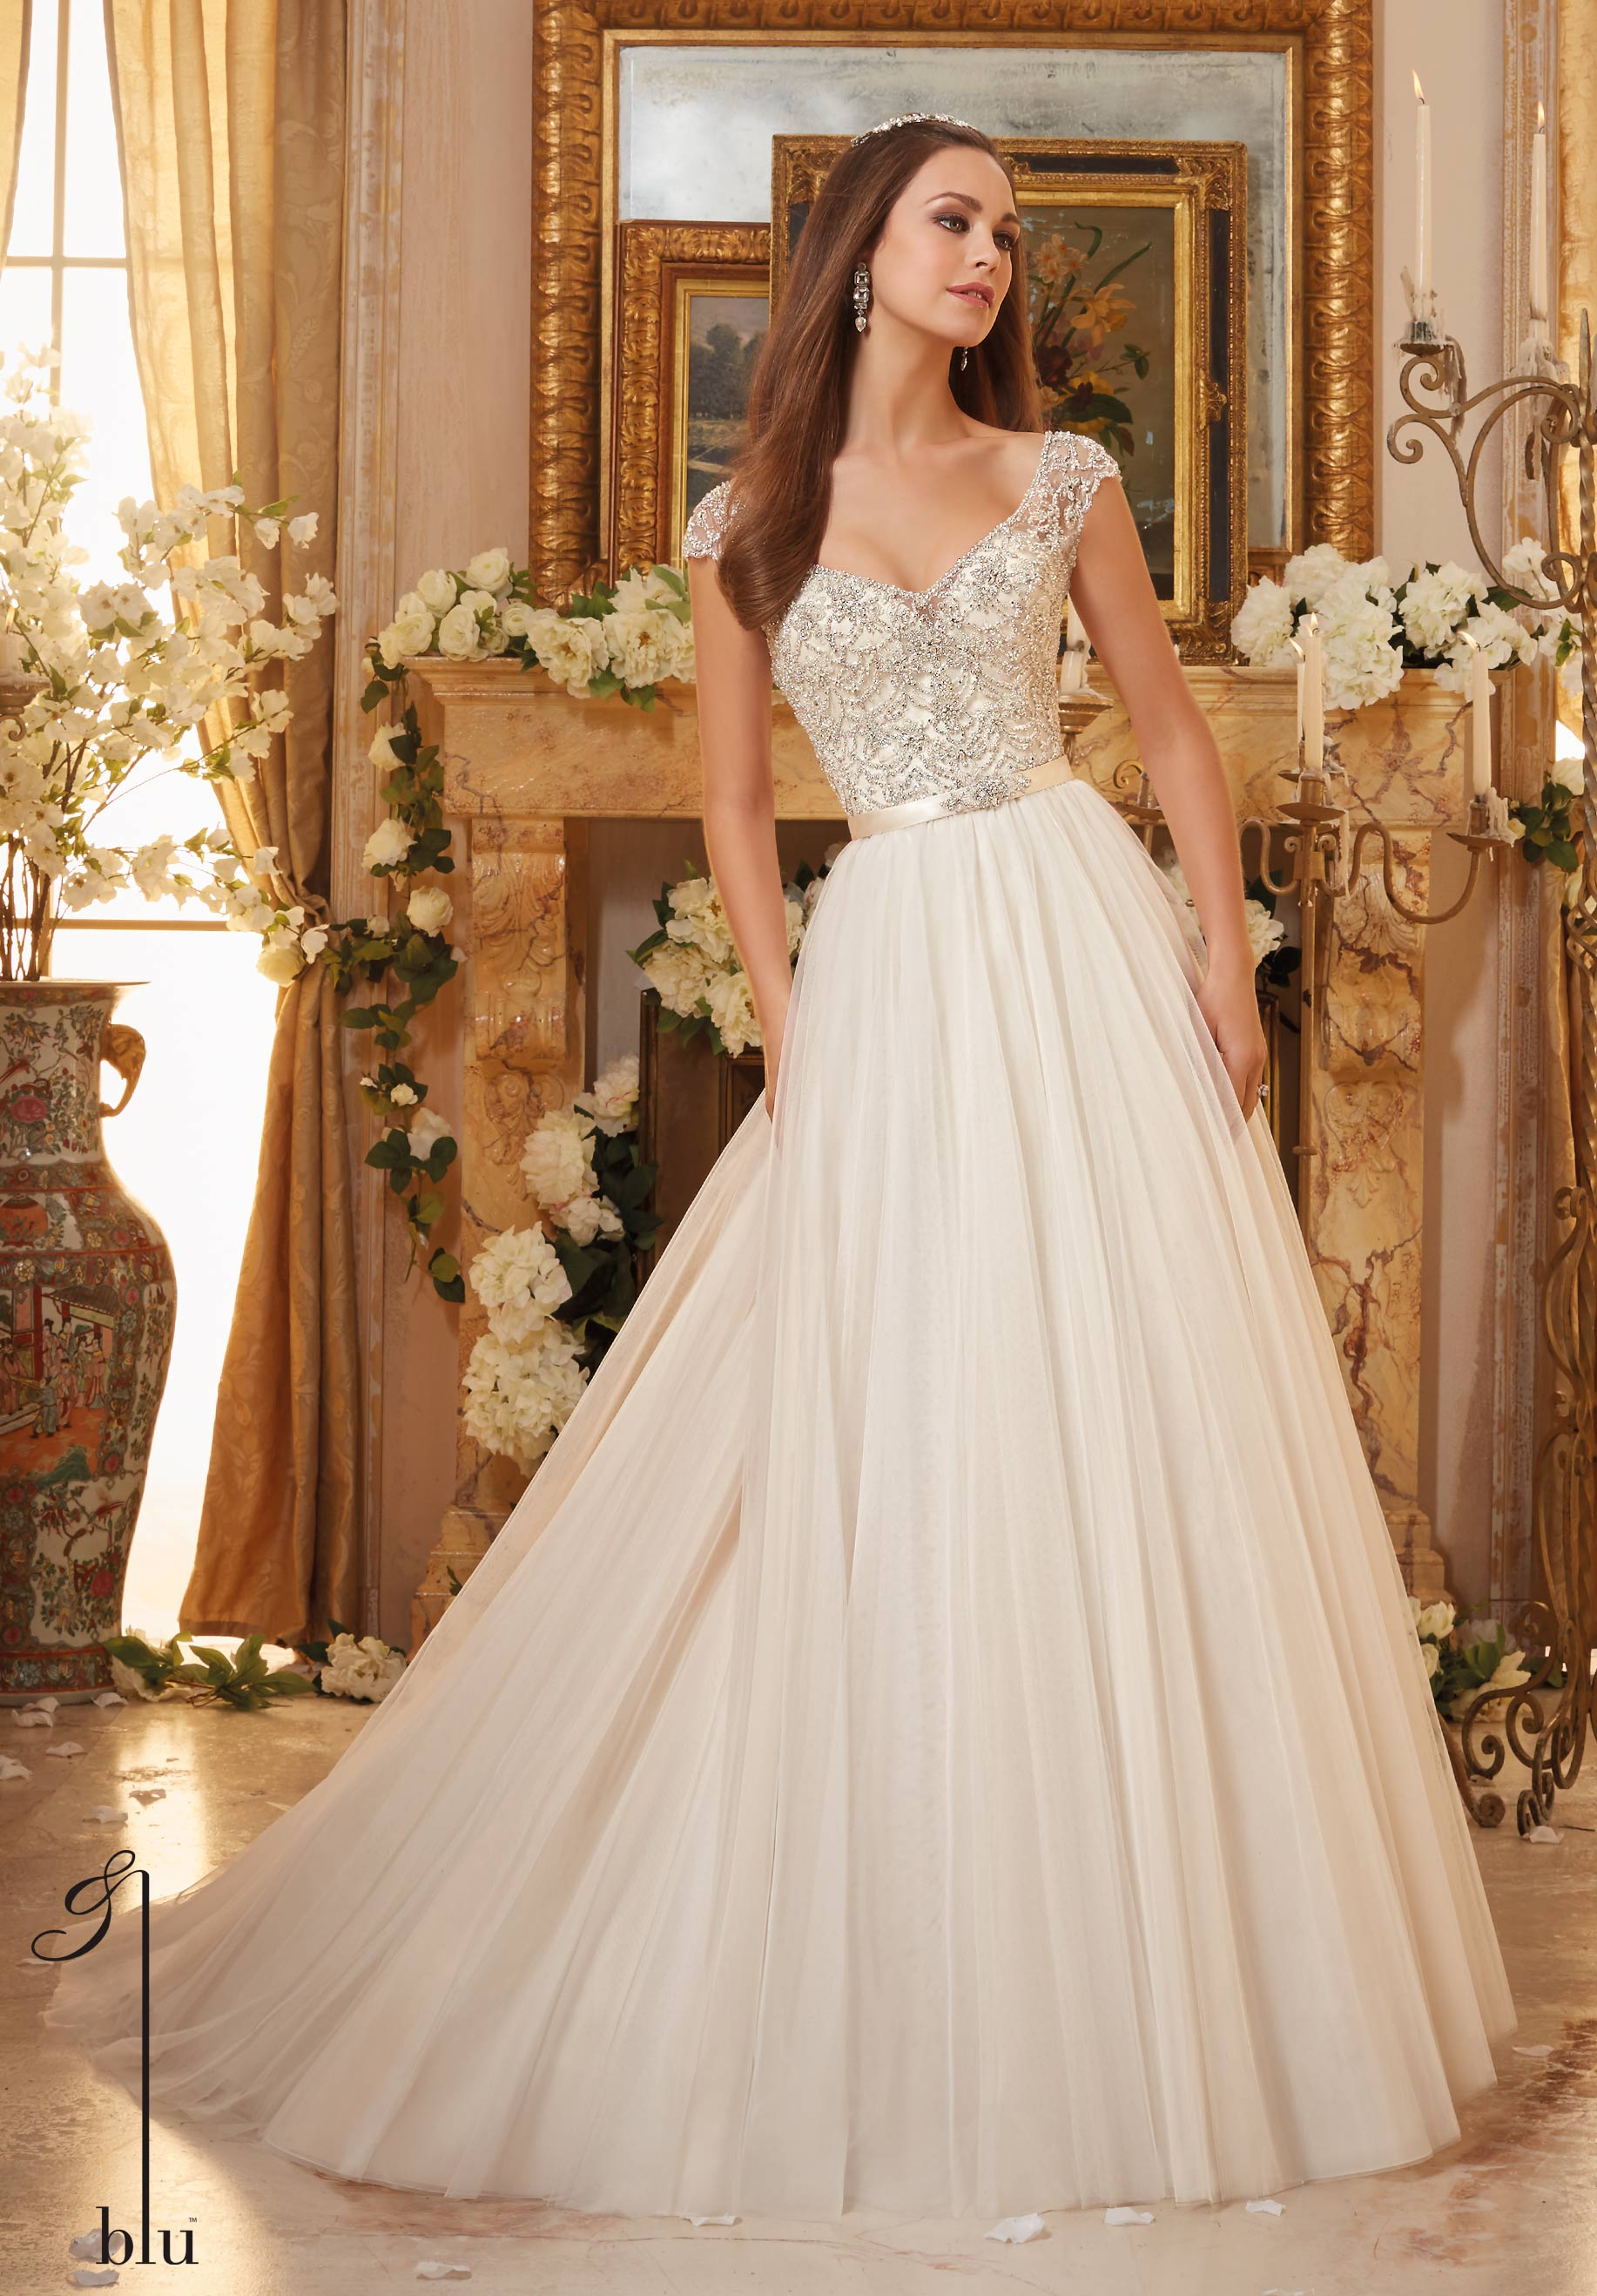 Morgan White Lily Couture Lovely Wedding Dresses Queensland